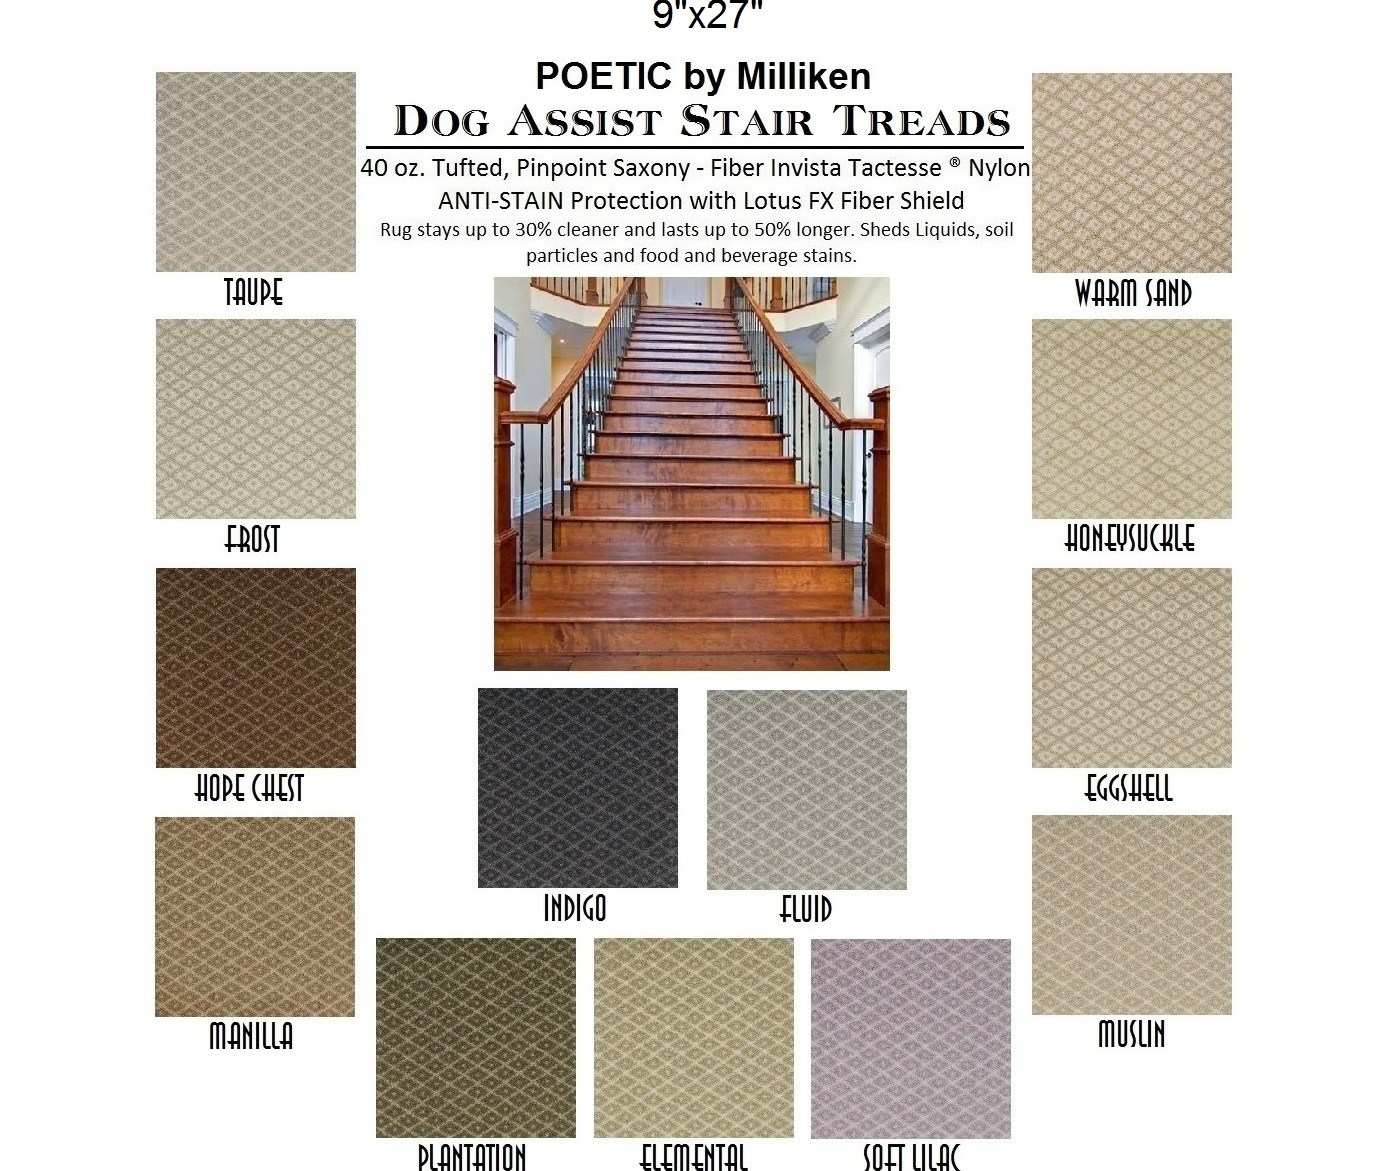 Poetic Ii Dog Assist Carpet Stair Treads   Saxony Carpet On Stairs   Laminate Riser   Brown   Carpeted   Tread   Thick